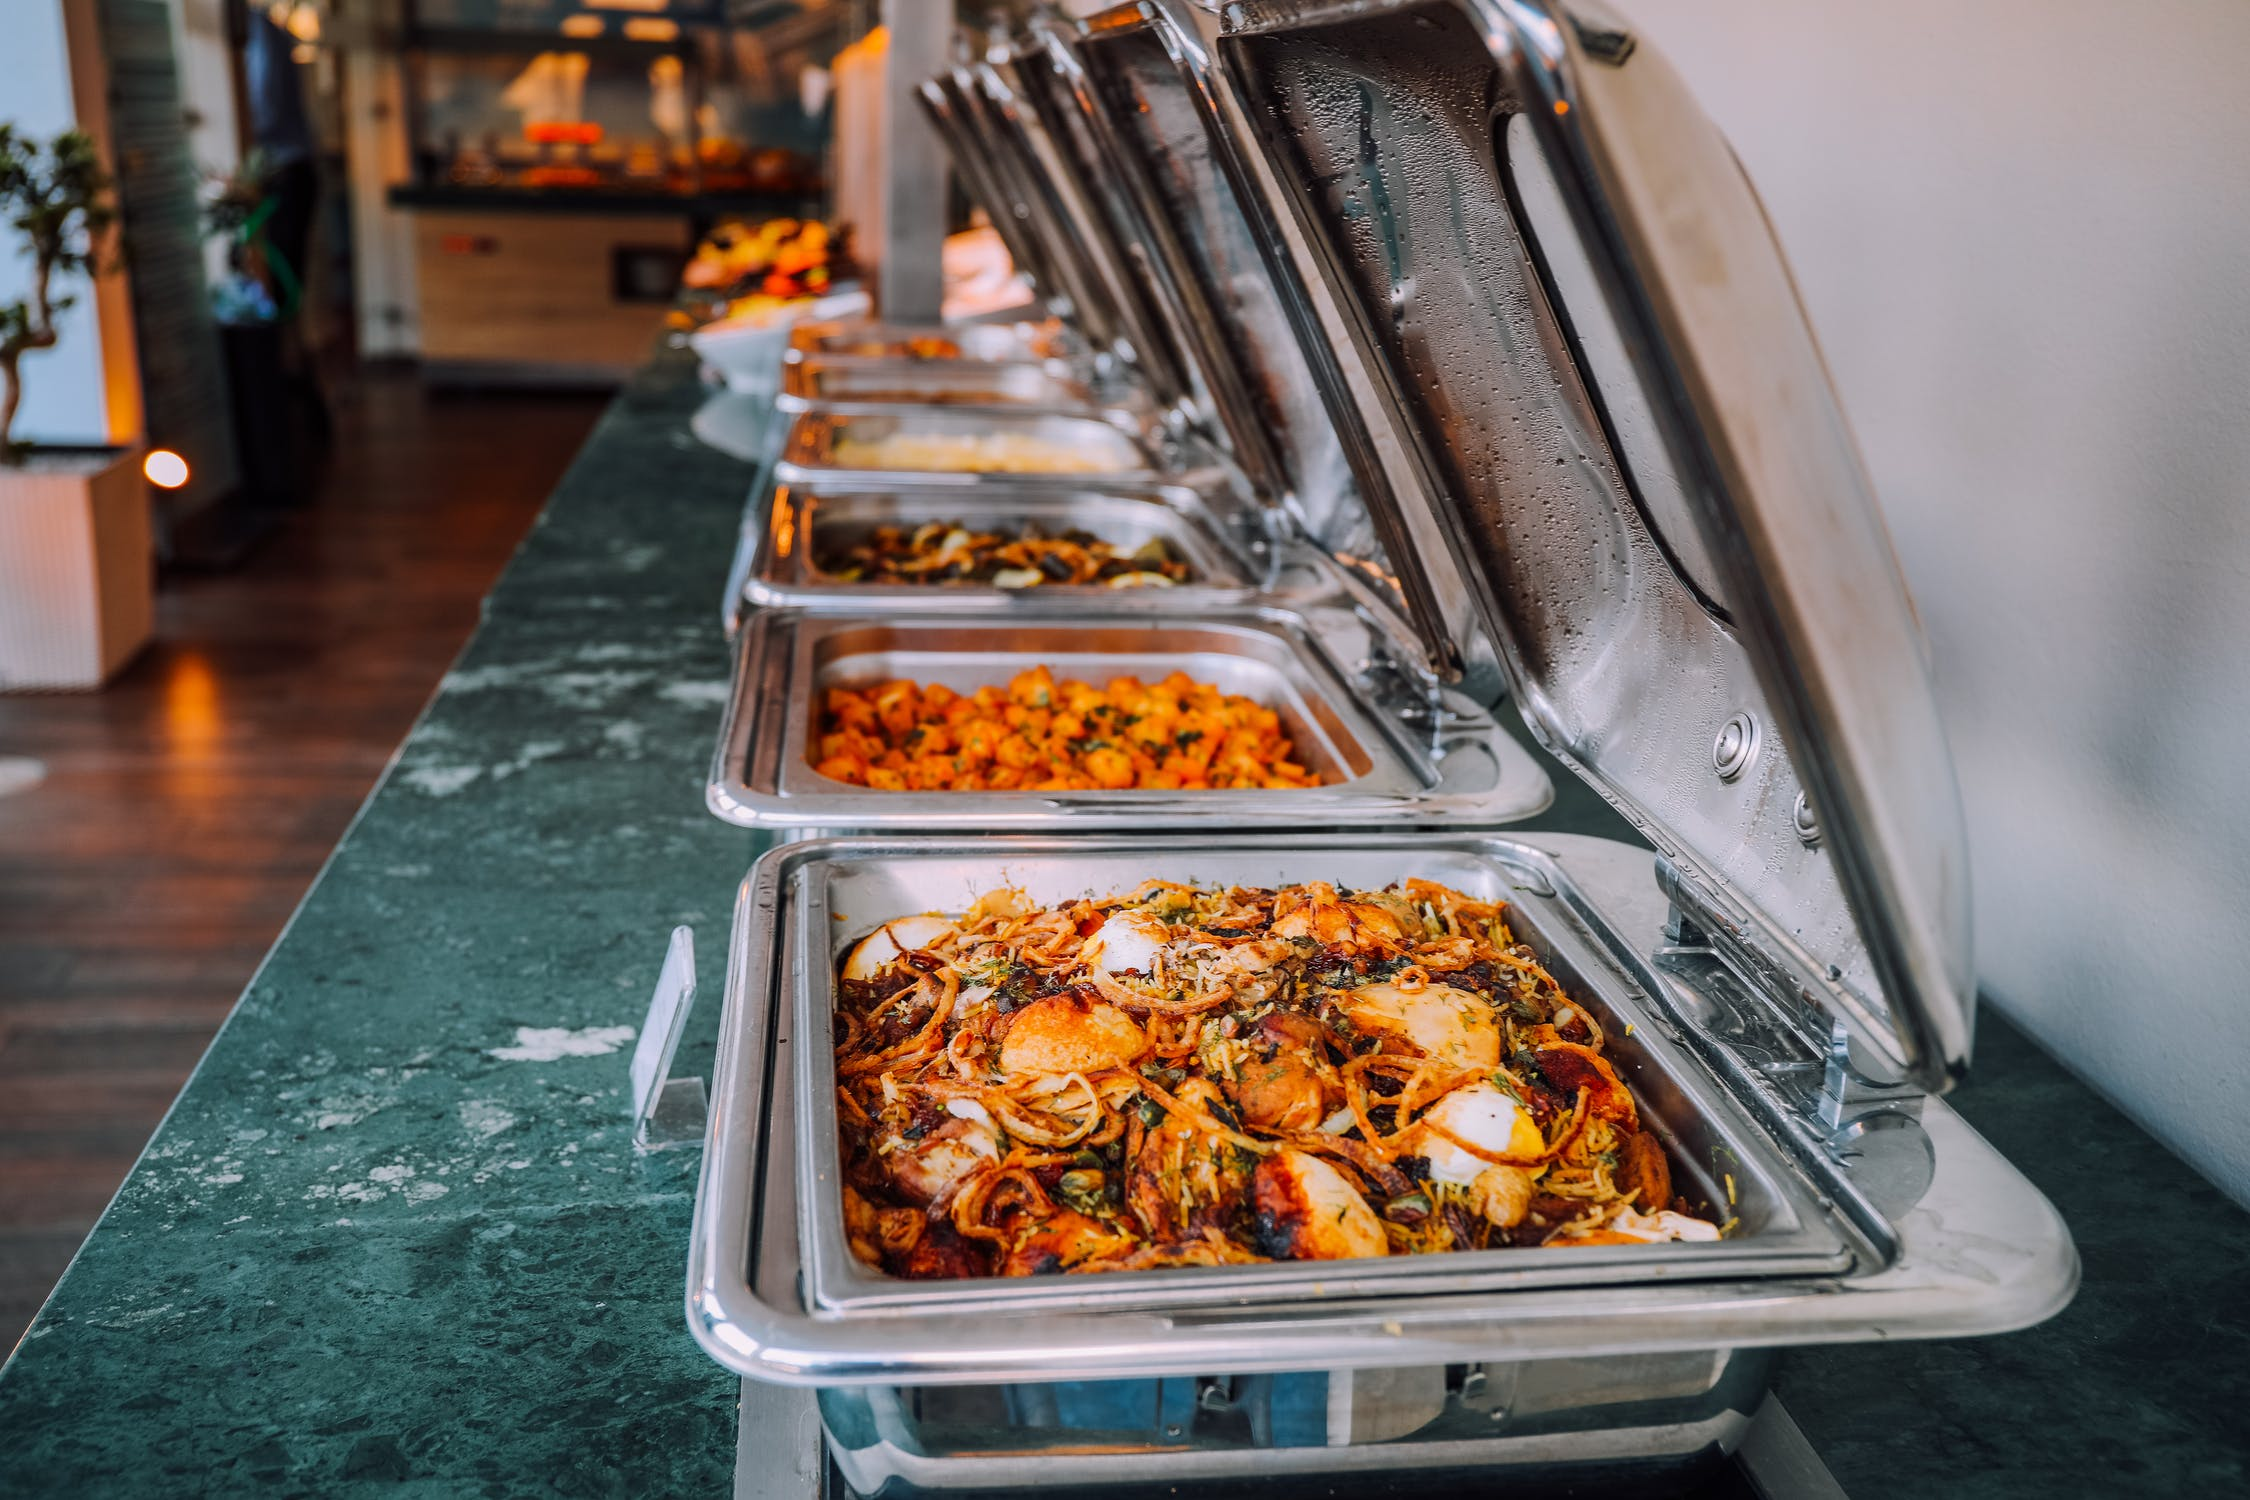 buffet trays full of savory food